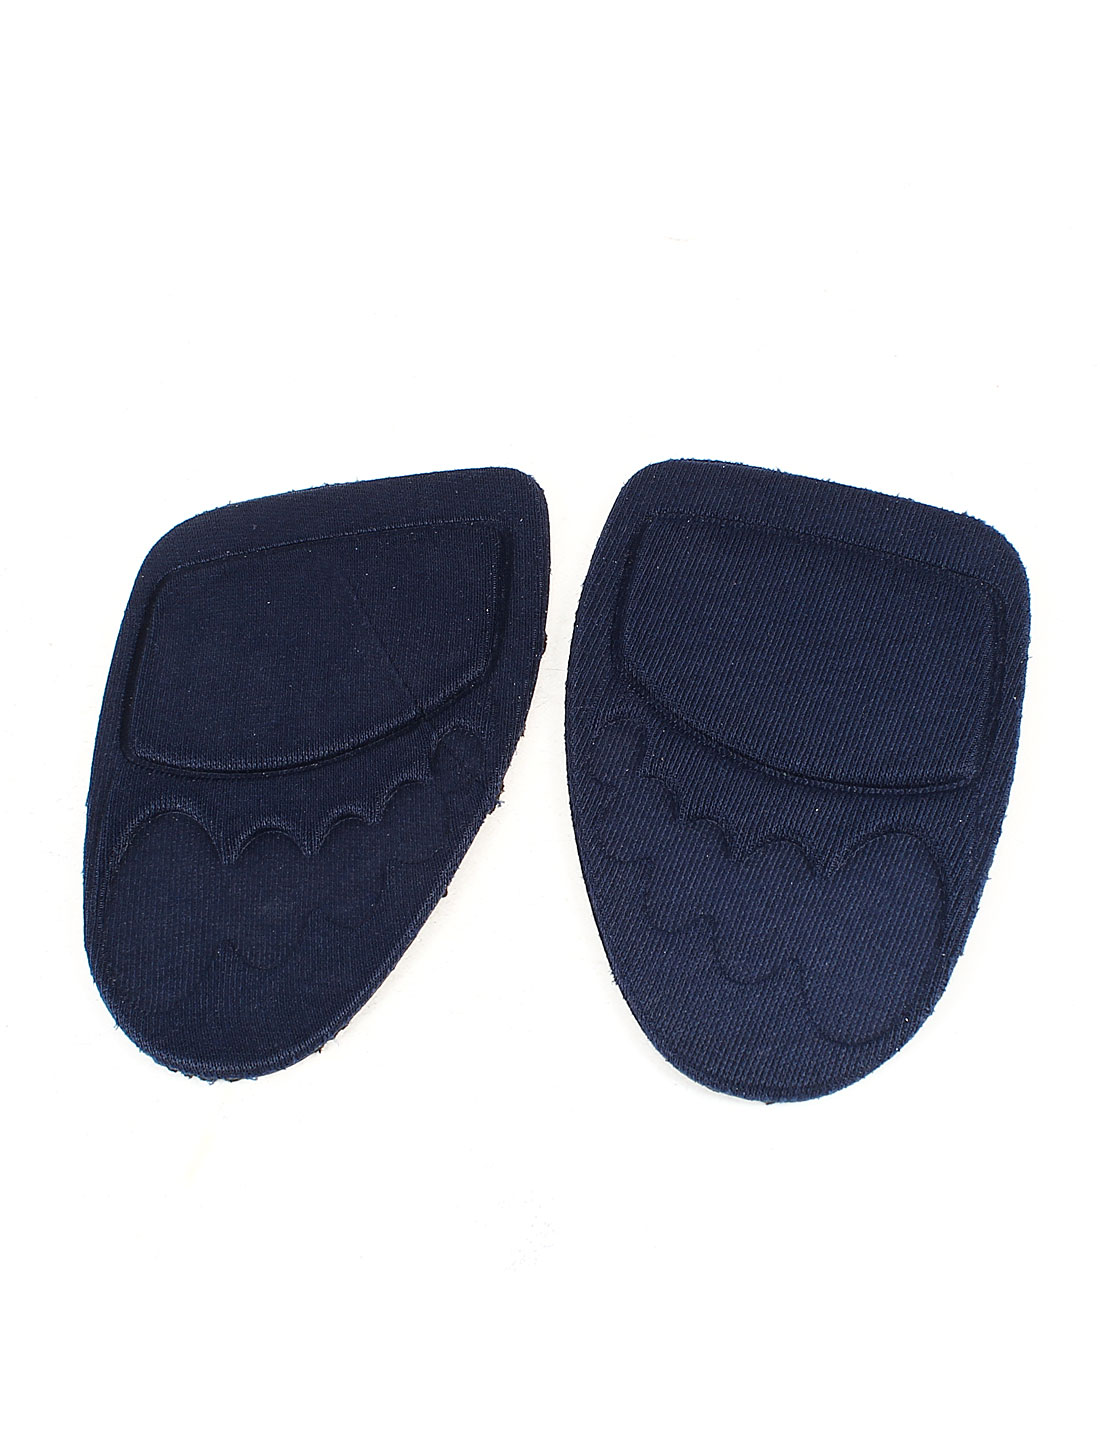 Pair Anti Slip Sponge Front Half Insoles Shoe Pads Cushion for Women